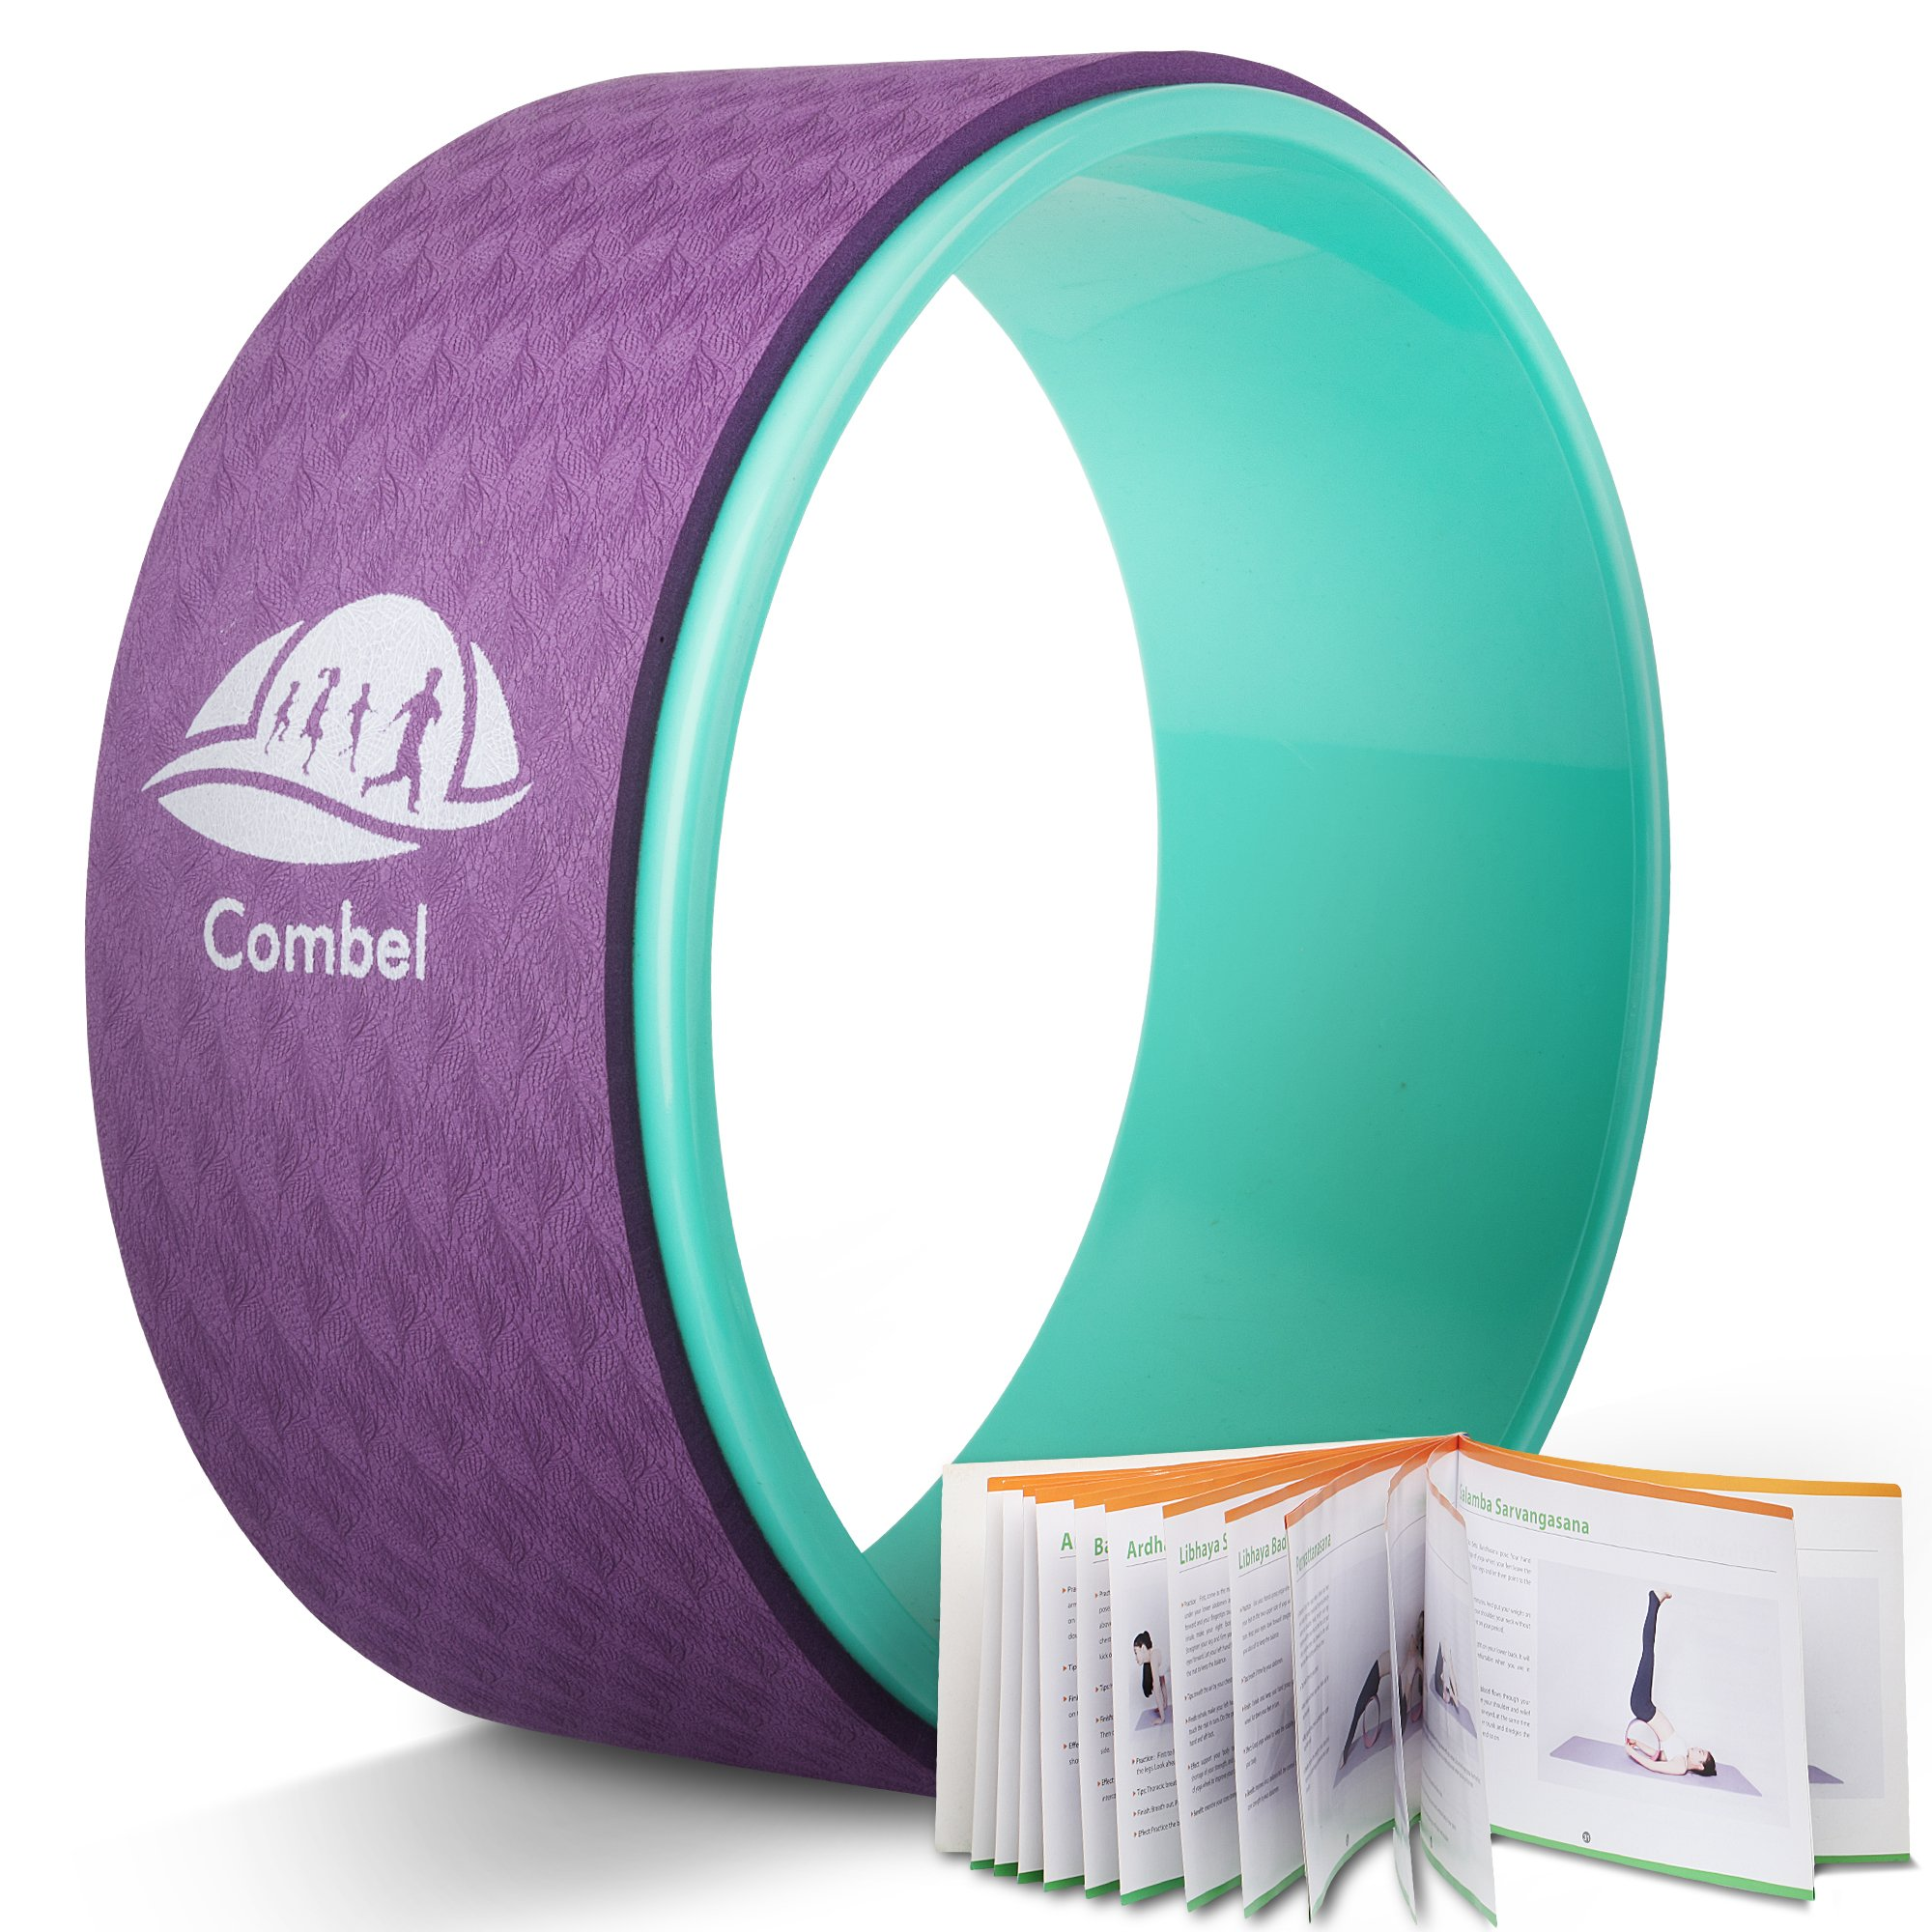 Combel Yoga Wheel-Strong & Comfortable Yoga Wheel, Superior Quality, Excellent Accessory for Stress and Pain Prevention.